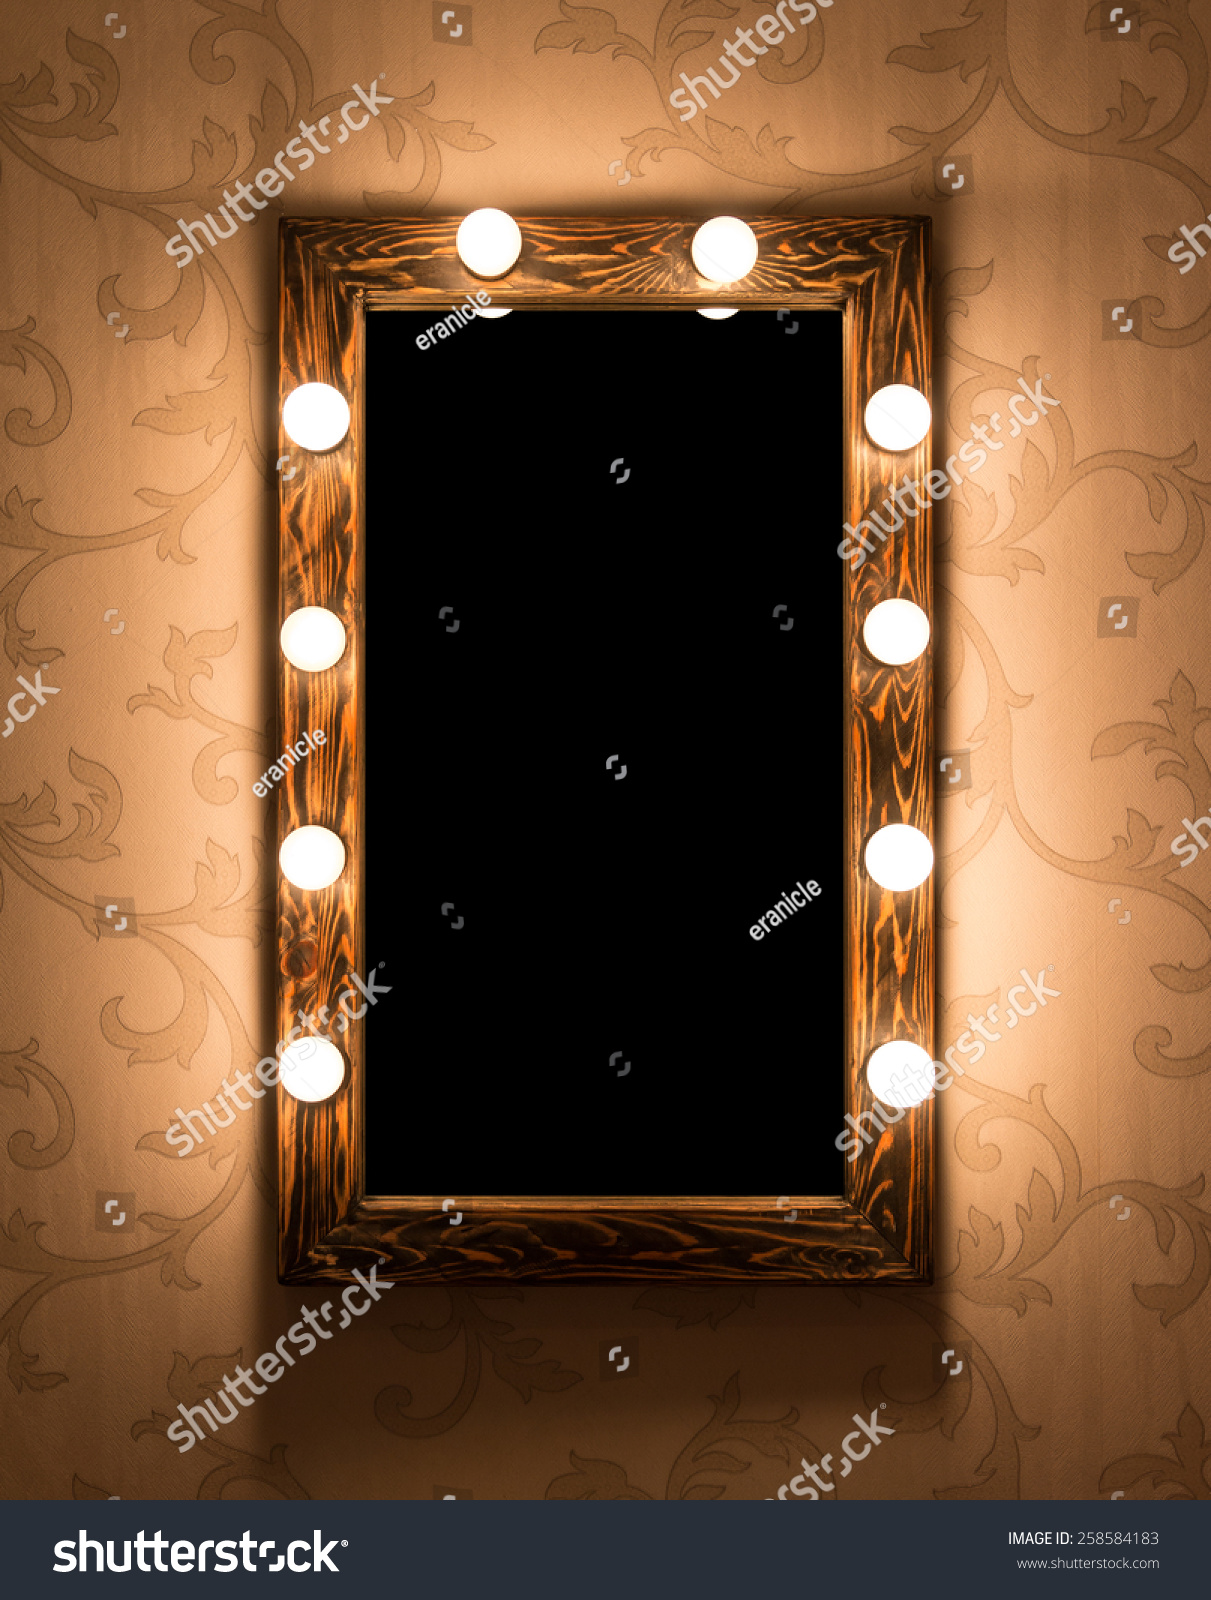 Woman's makeup place with mirror and bulbs #258584183